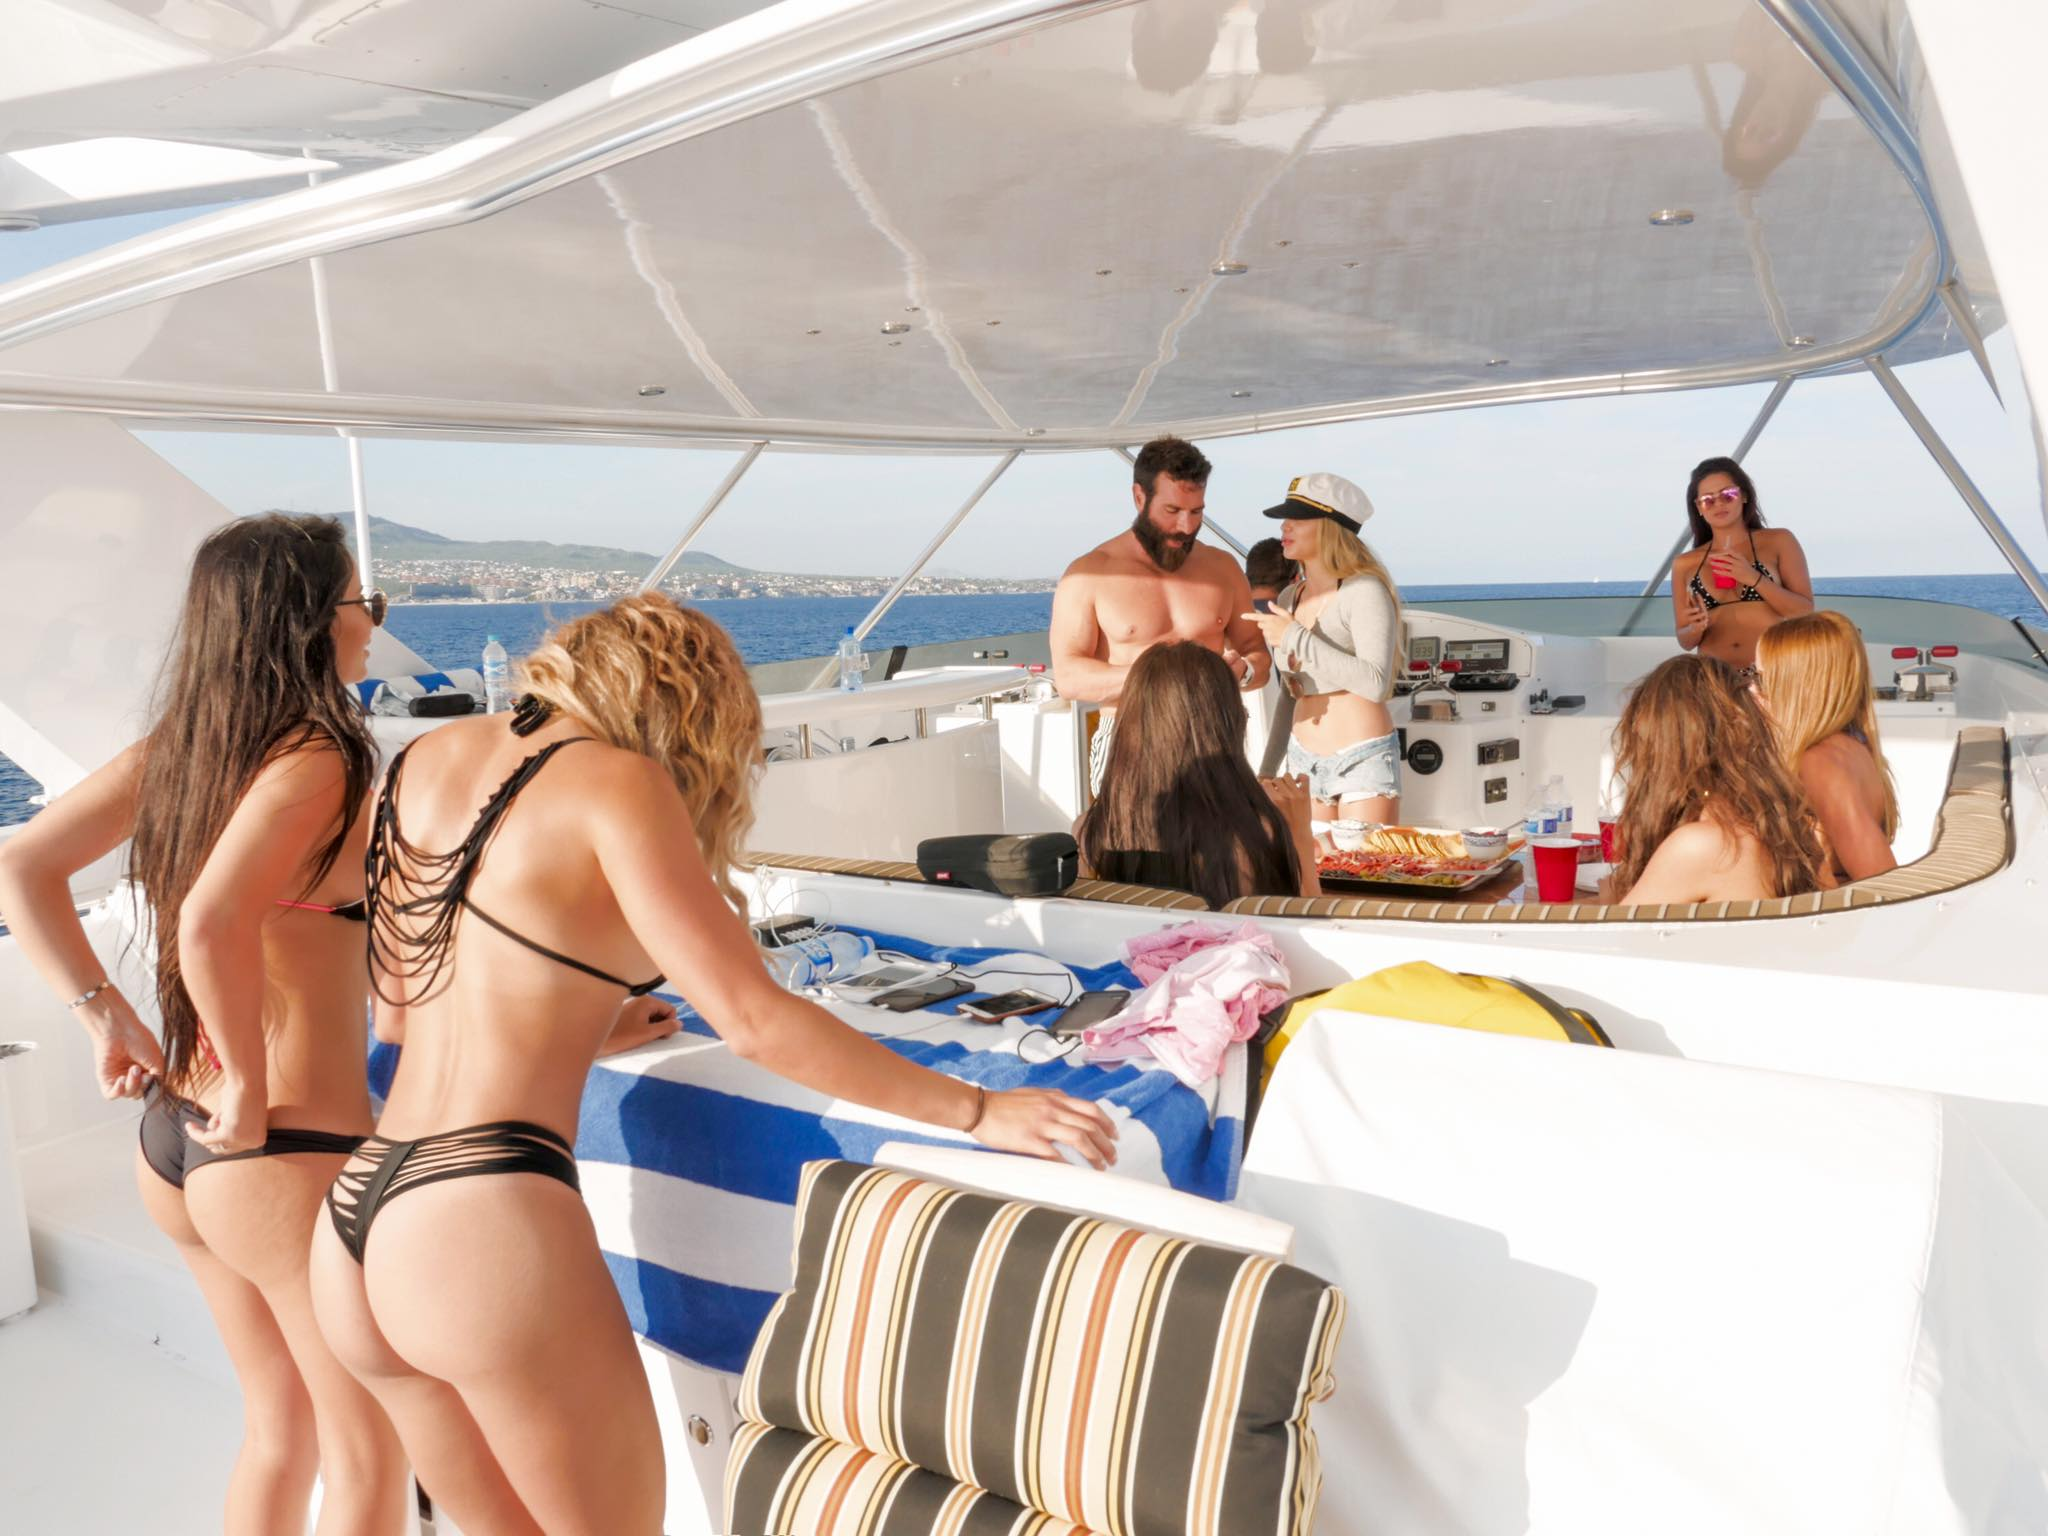 Dan Bilzerian Doesn%E2%80%99t Actually Exist And Here%E2%80%99s Why4 Dan Bilzerian Doesn't Actually Exist, And Here's Why